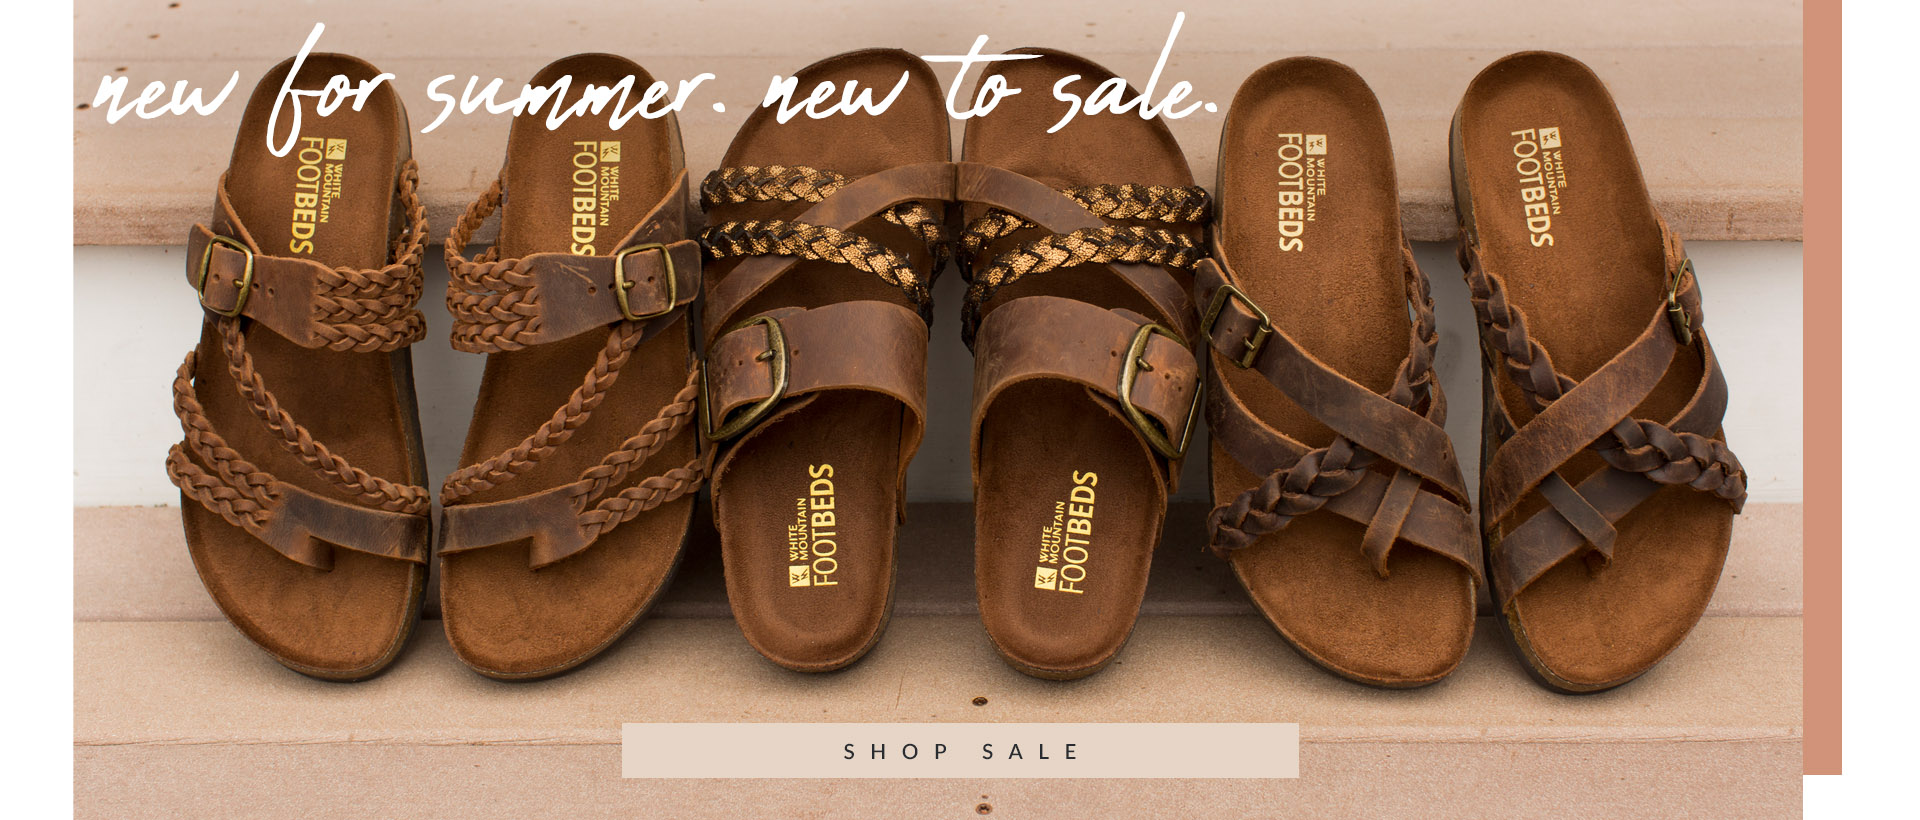 New For Summer. New to Sale.